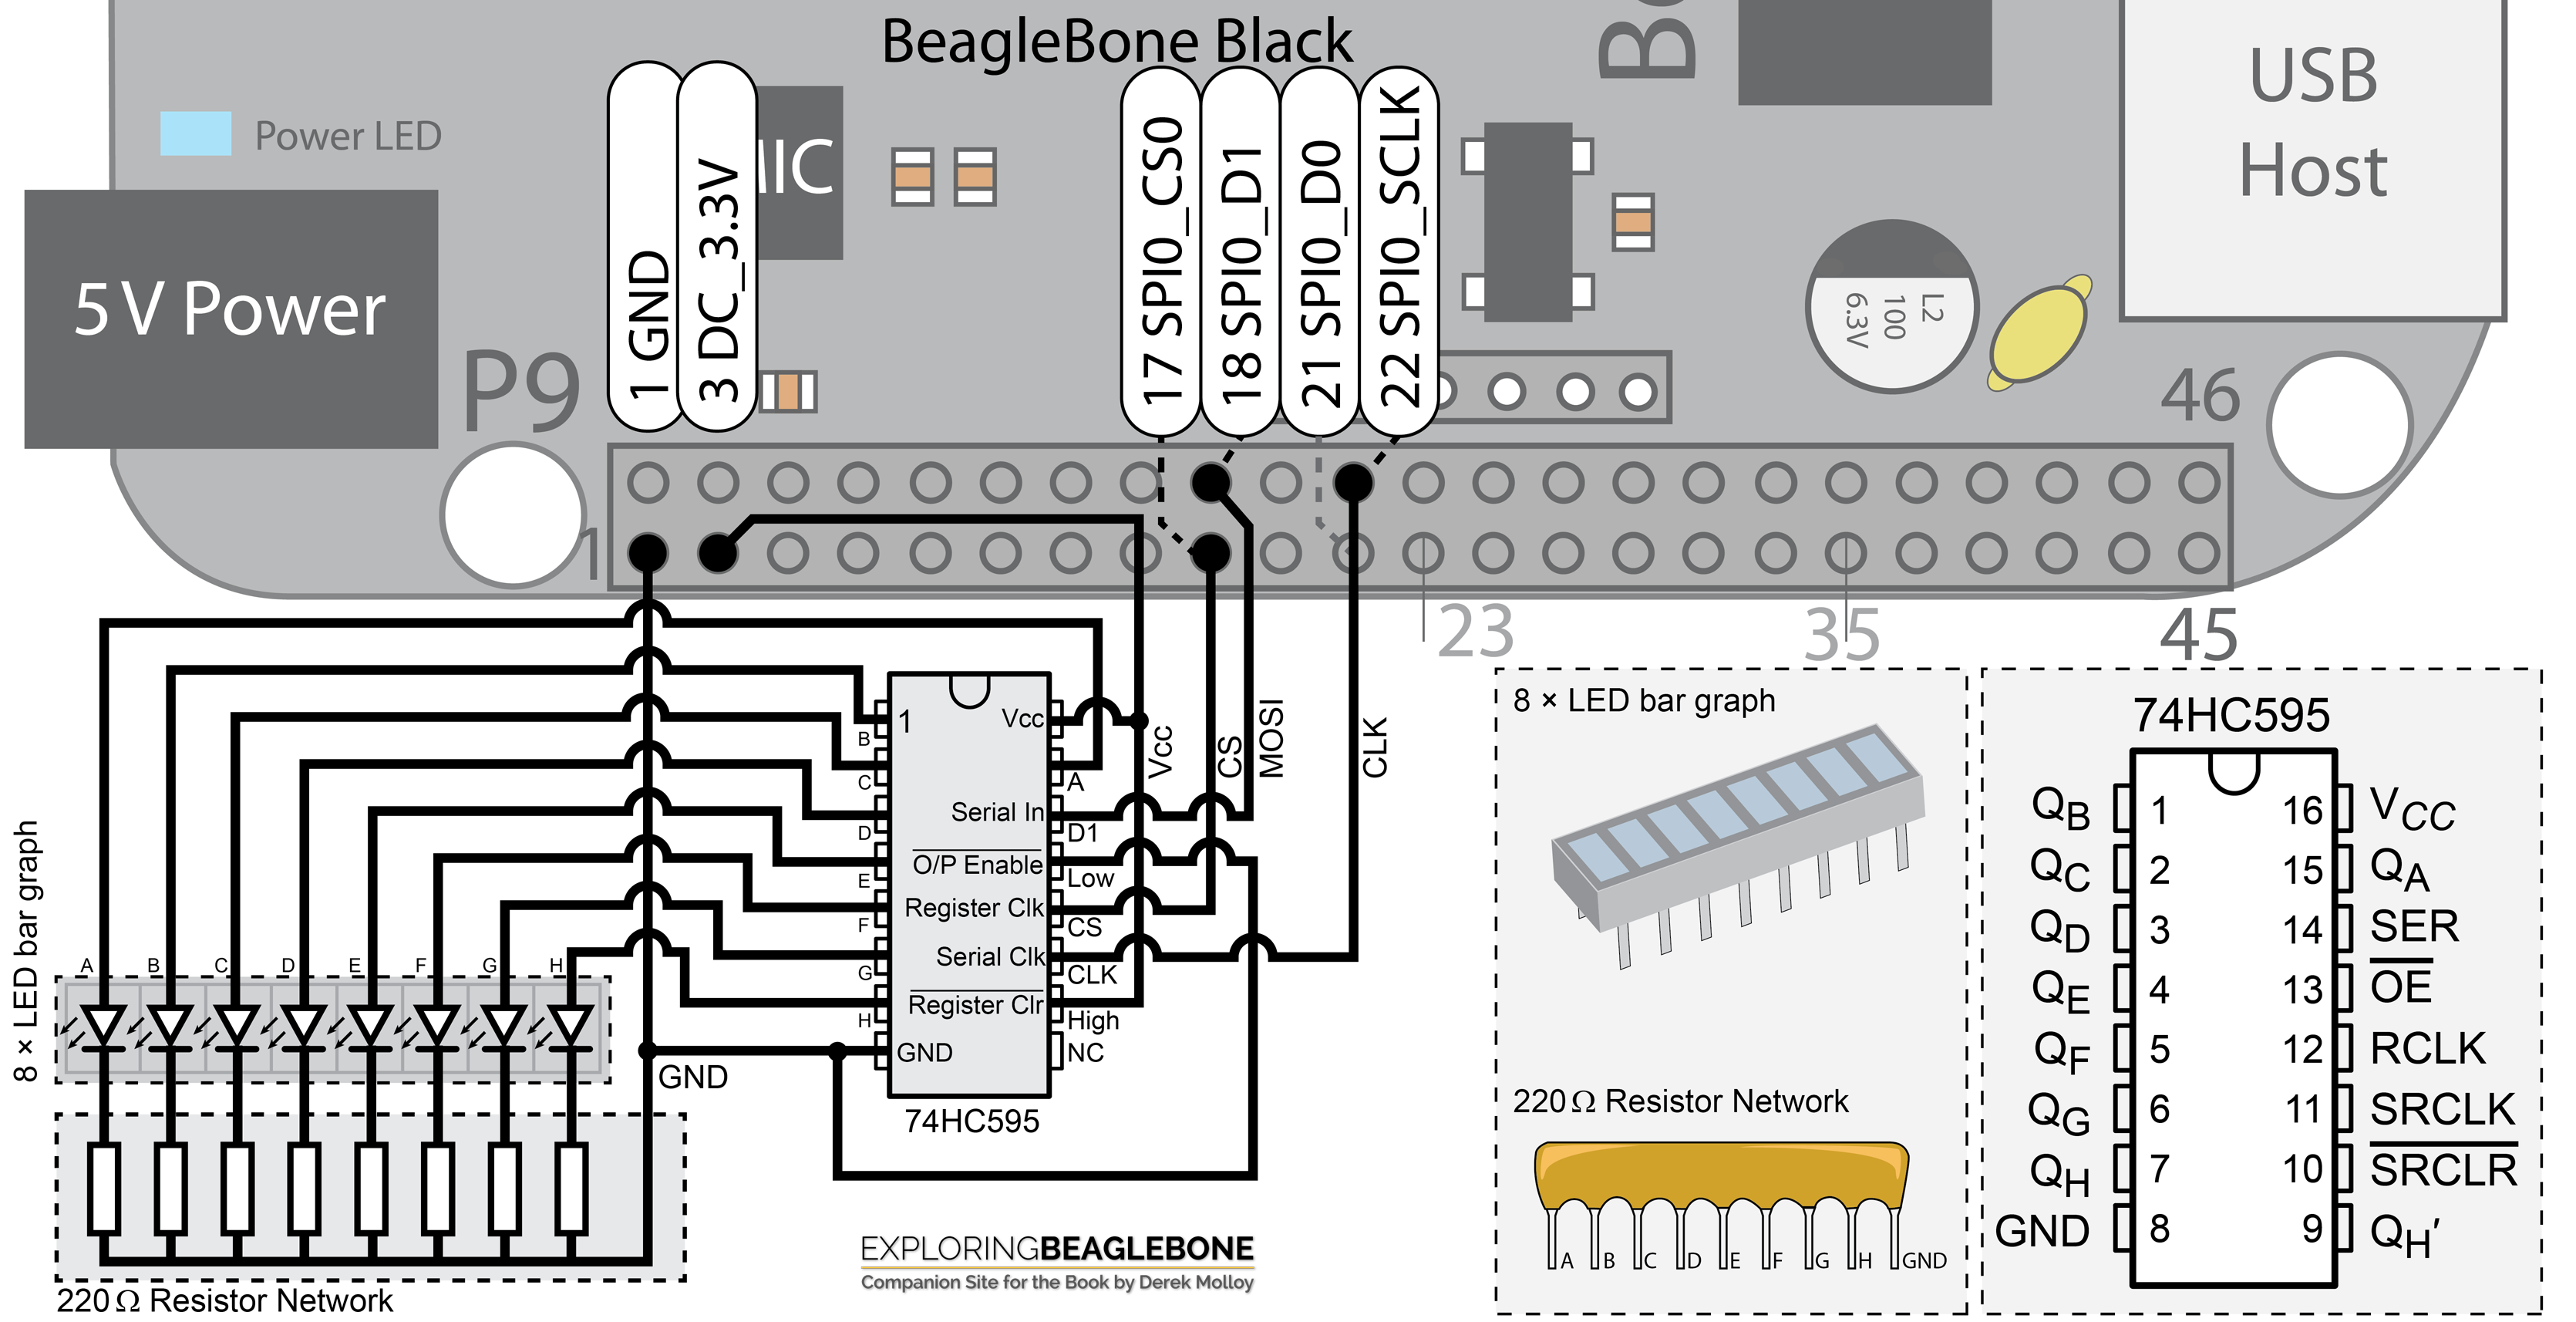 Beaglebone Black Schematic on geiger counter schematic, bluetooth schematic, electronics schematic, wireless schematic, breadboard schematic, apple schematic, usb schematic, quadcopter schematic, xbee schematic, flux capacitor schematic, msp430 schematic, lcd schematic, gps schematic, solar schematic, arduino schematic,